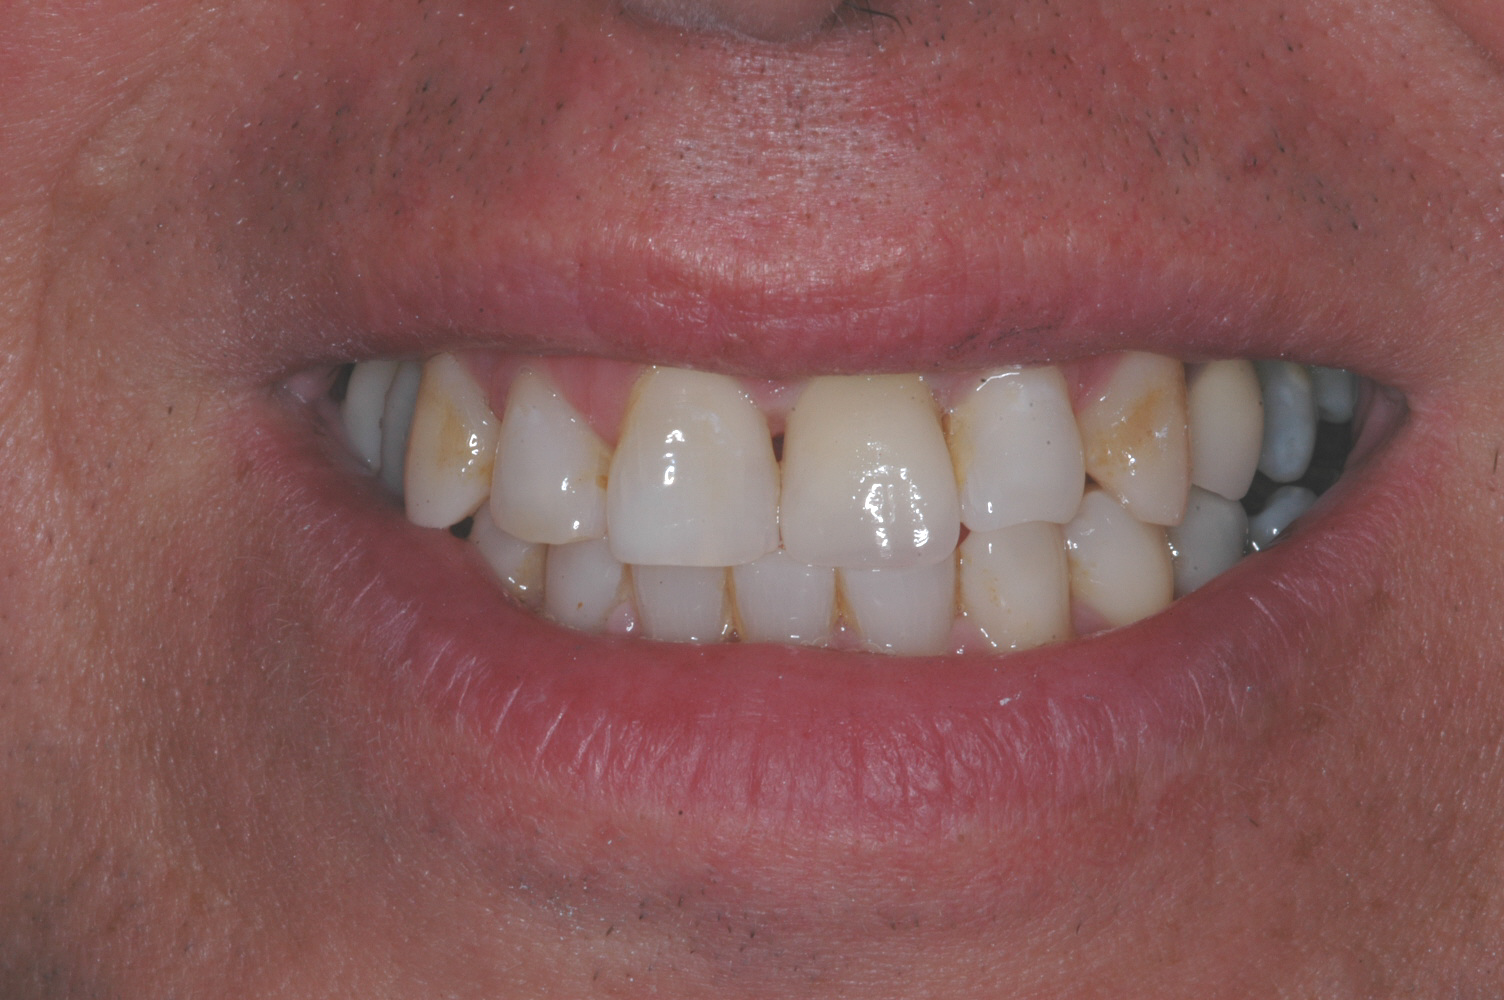 This is the final crown - today's crowns can be very esthetic and indiscernible from the natural teeth.